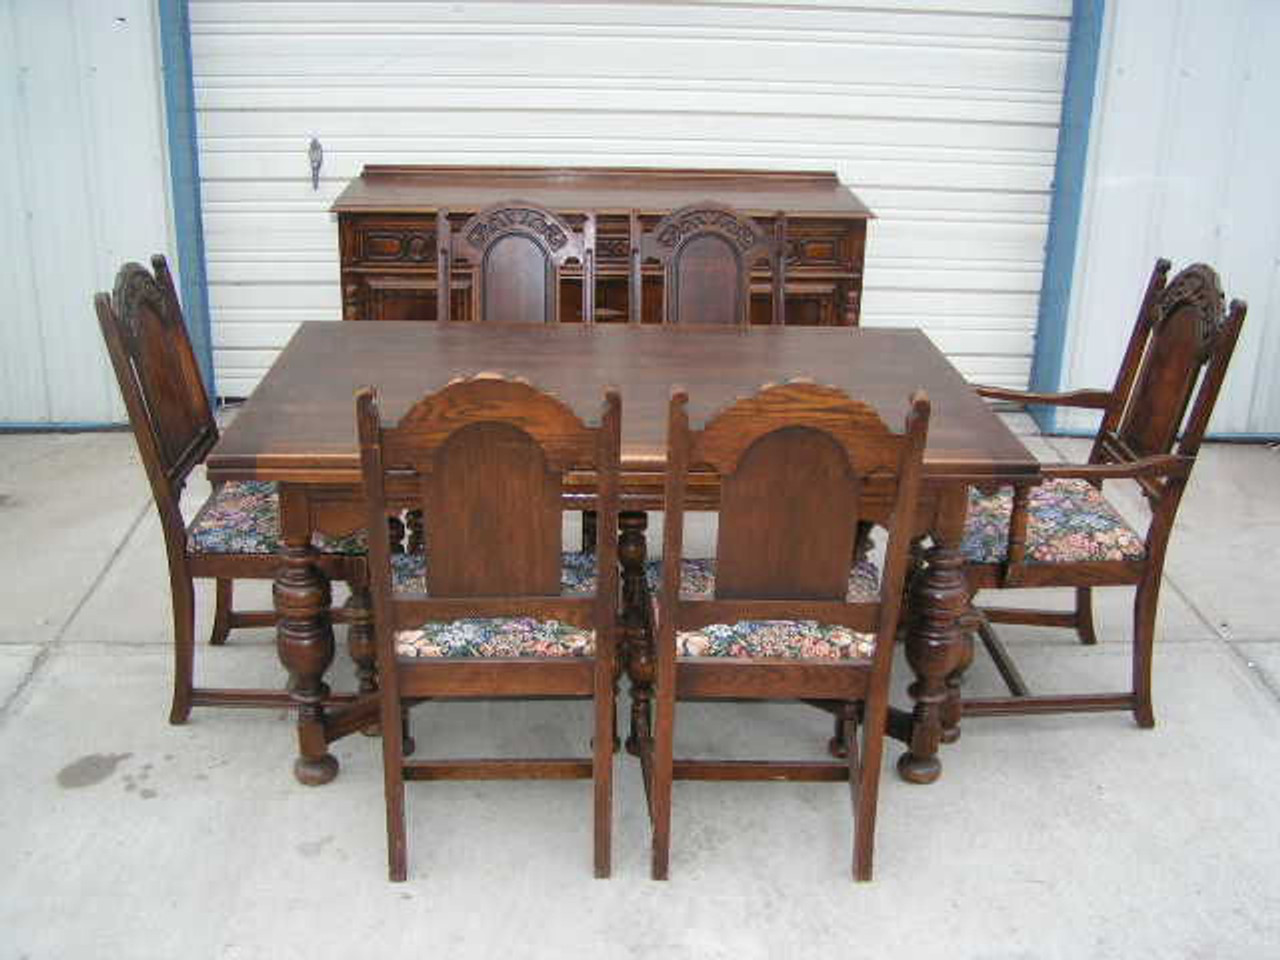 This Great Eight Piece Antique Oak Refractory Dining Table Chairs